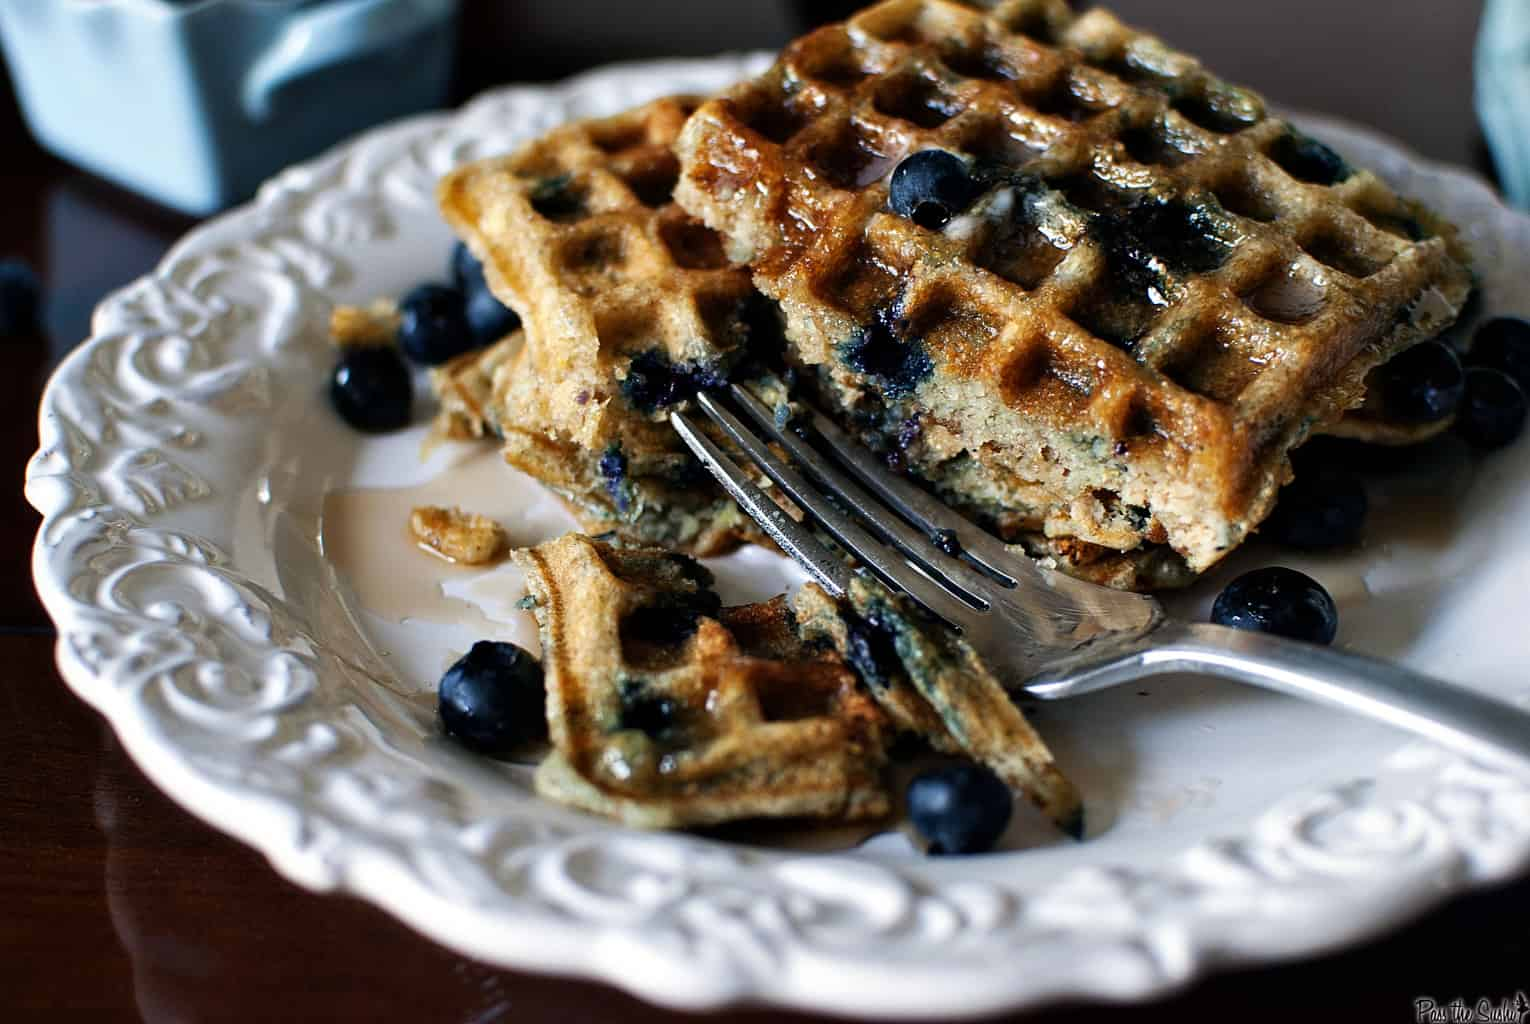 Blueberry Sour Cream Waffles - Pass The Sushi